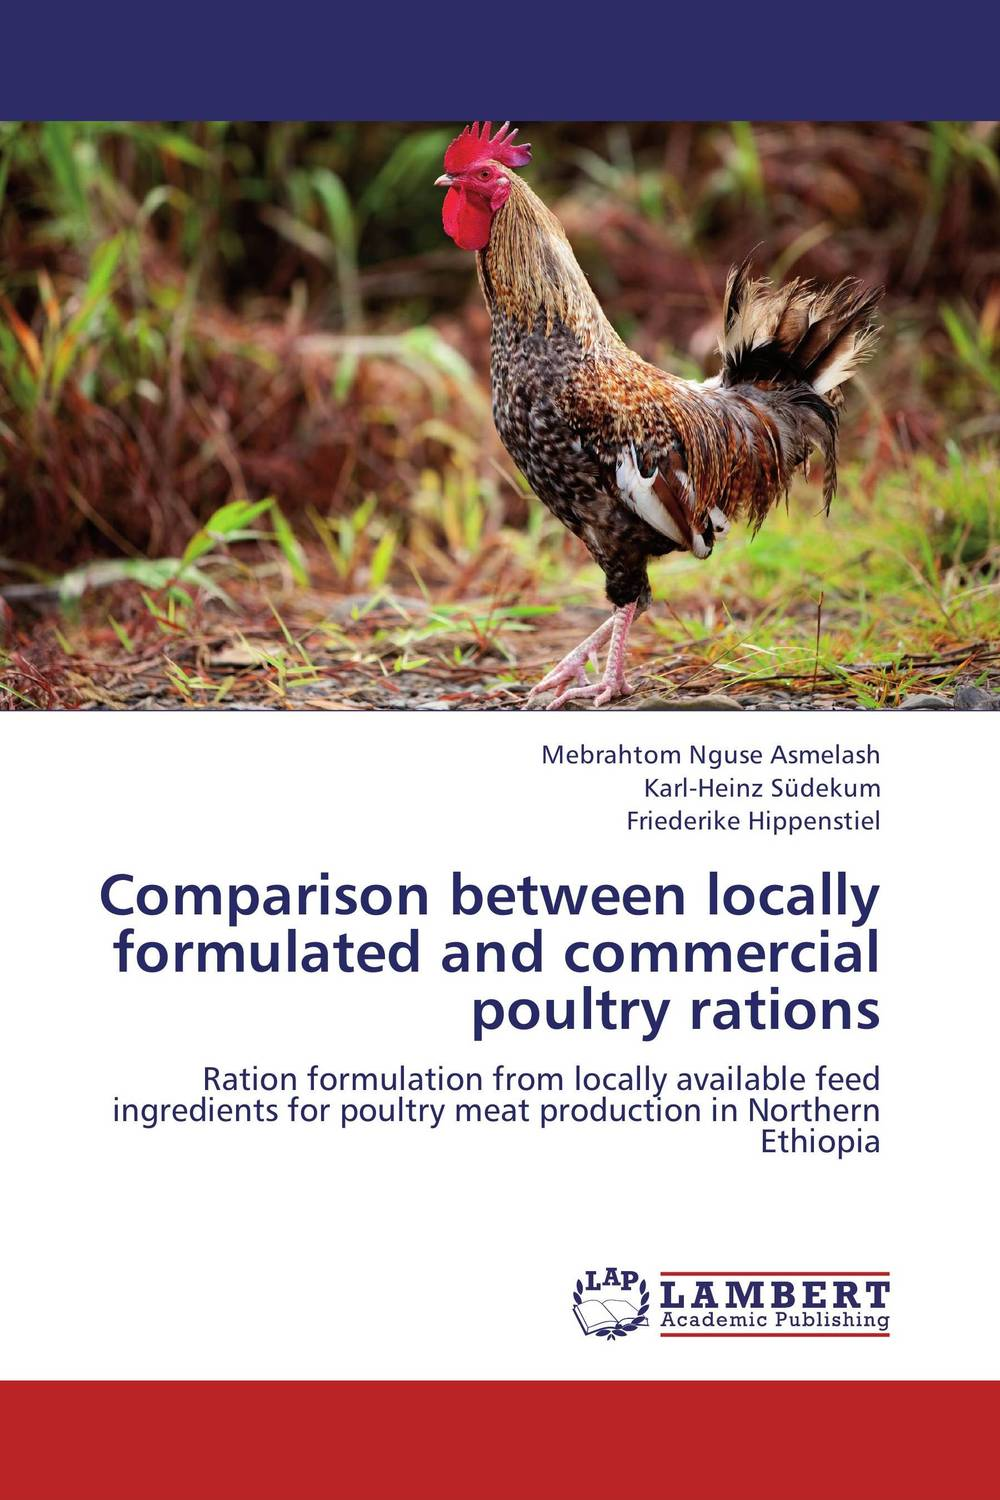 купить Comparison between locally formulated and commercial poultry rations недорого